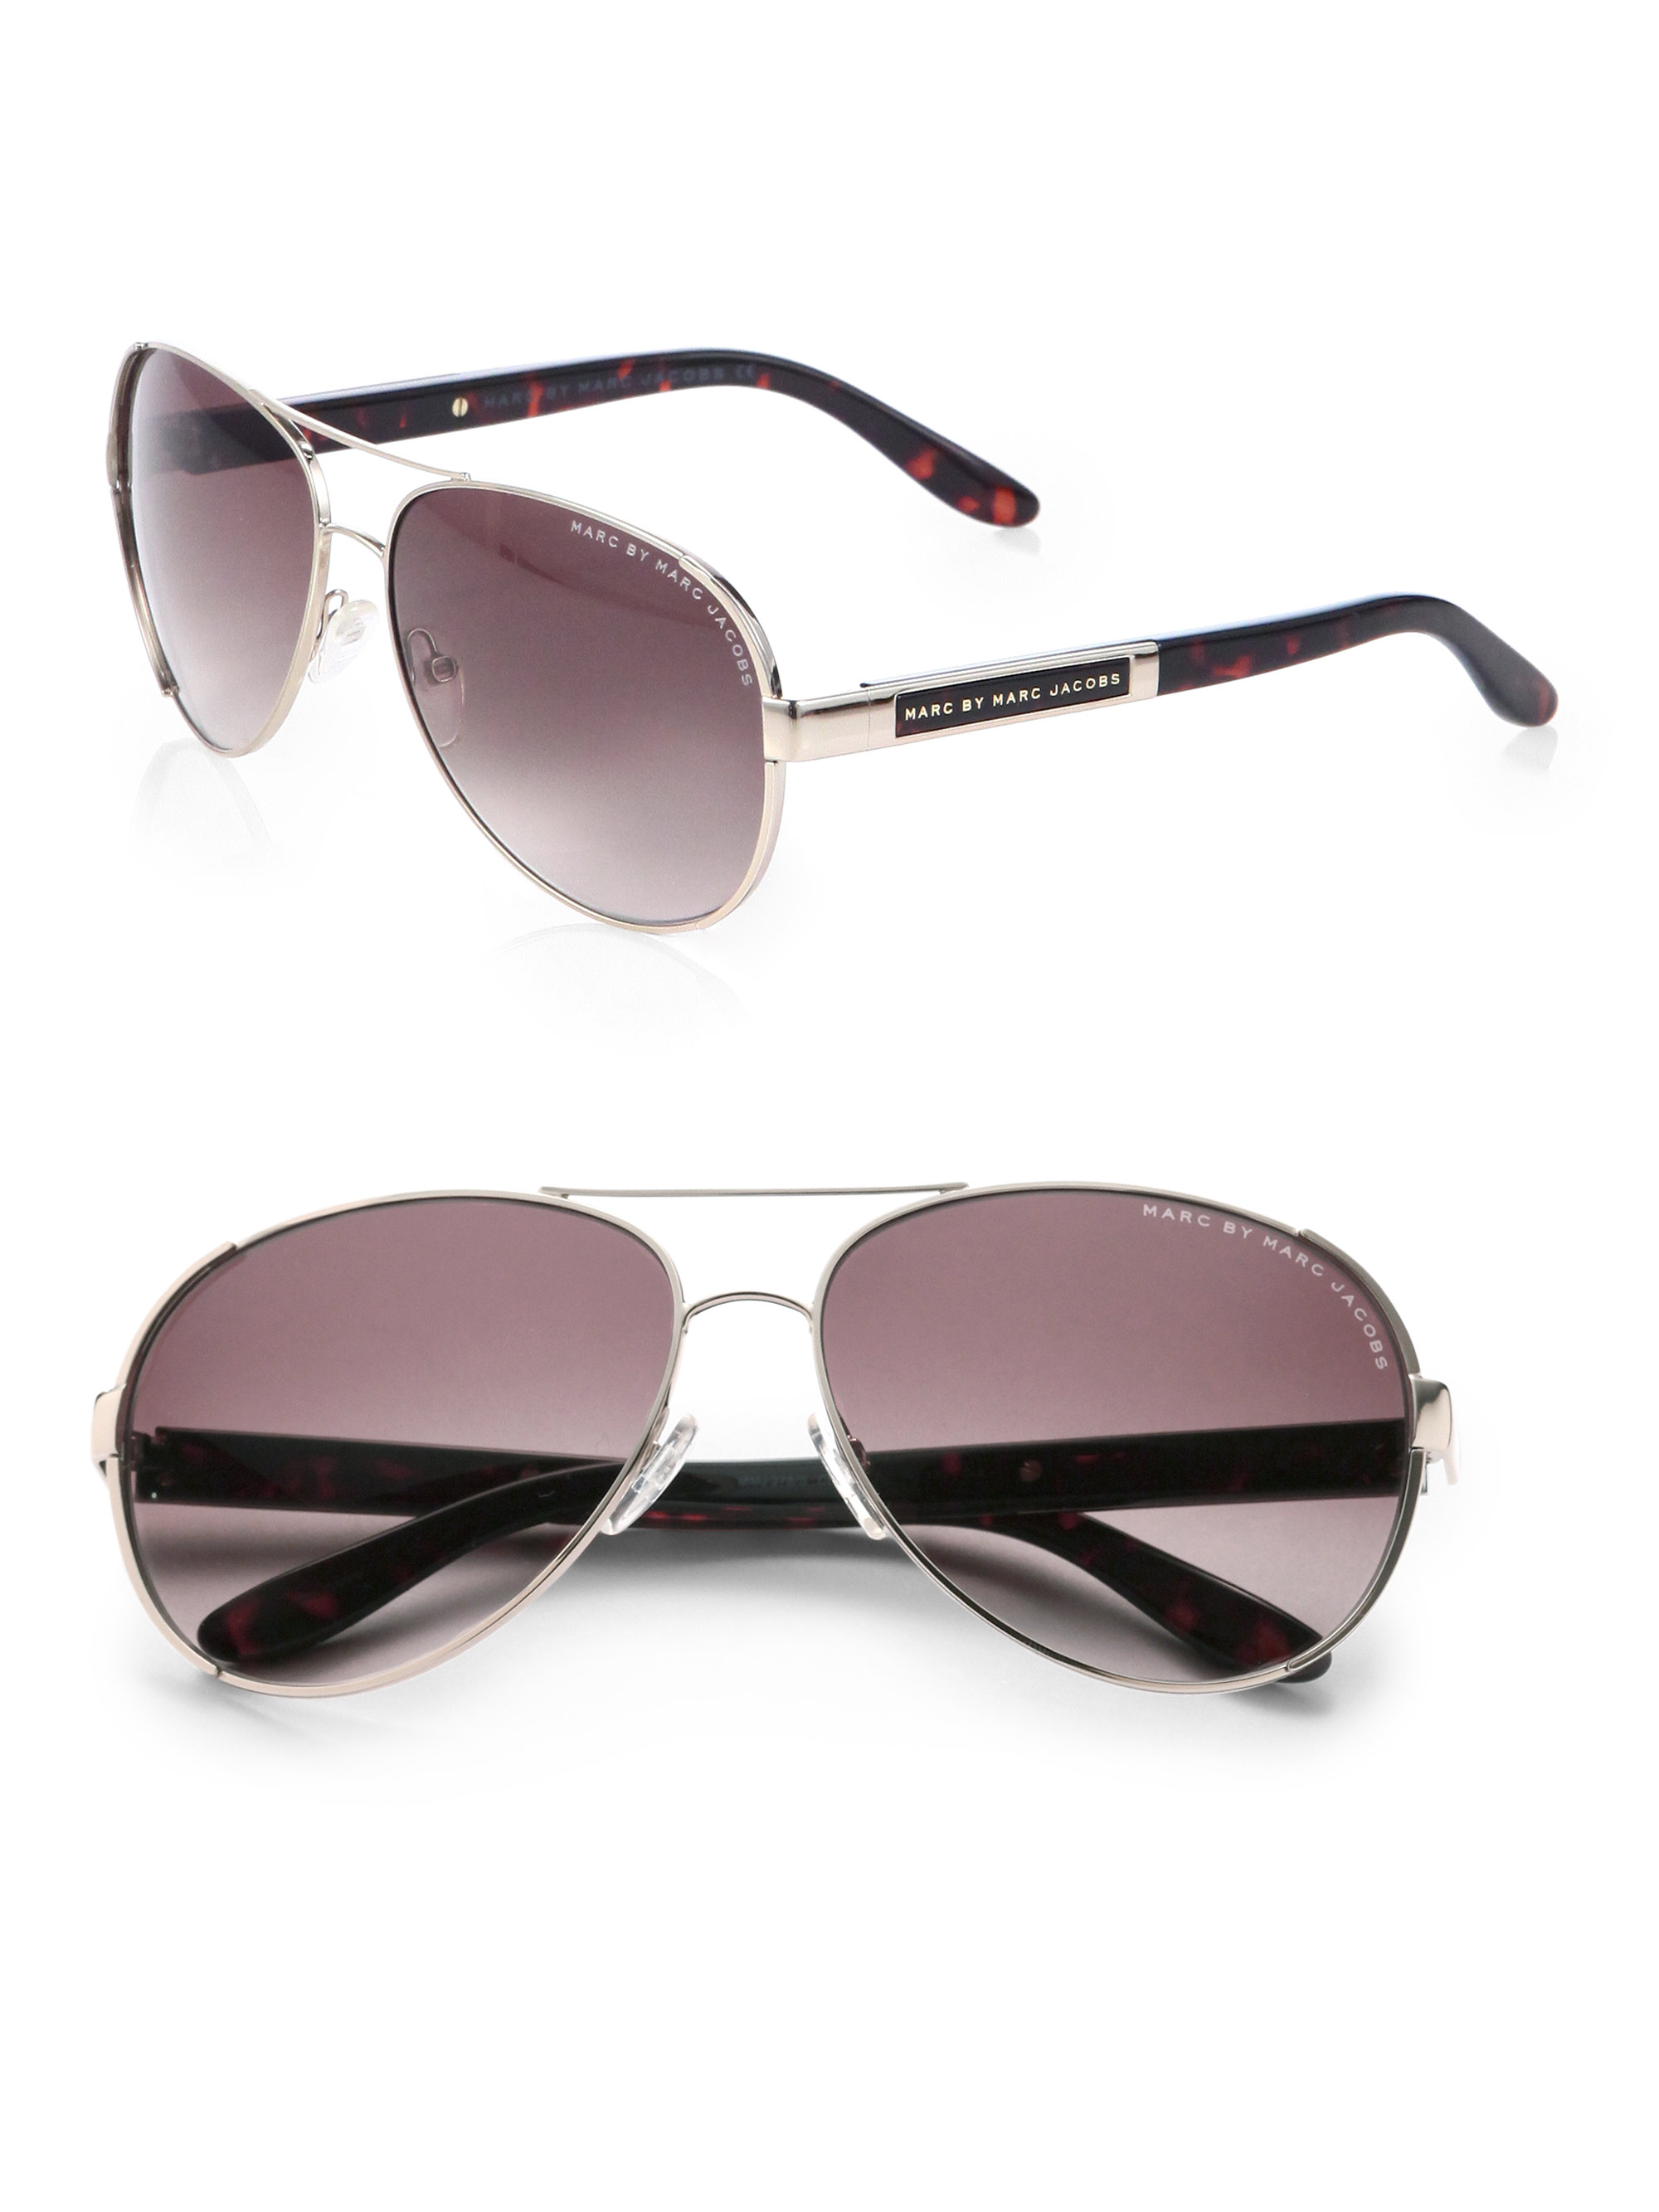 ddcf58bf594e Marc By Marc Jacobs Stainless Steel Aviator Sunglasses in Metallic ...